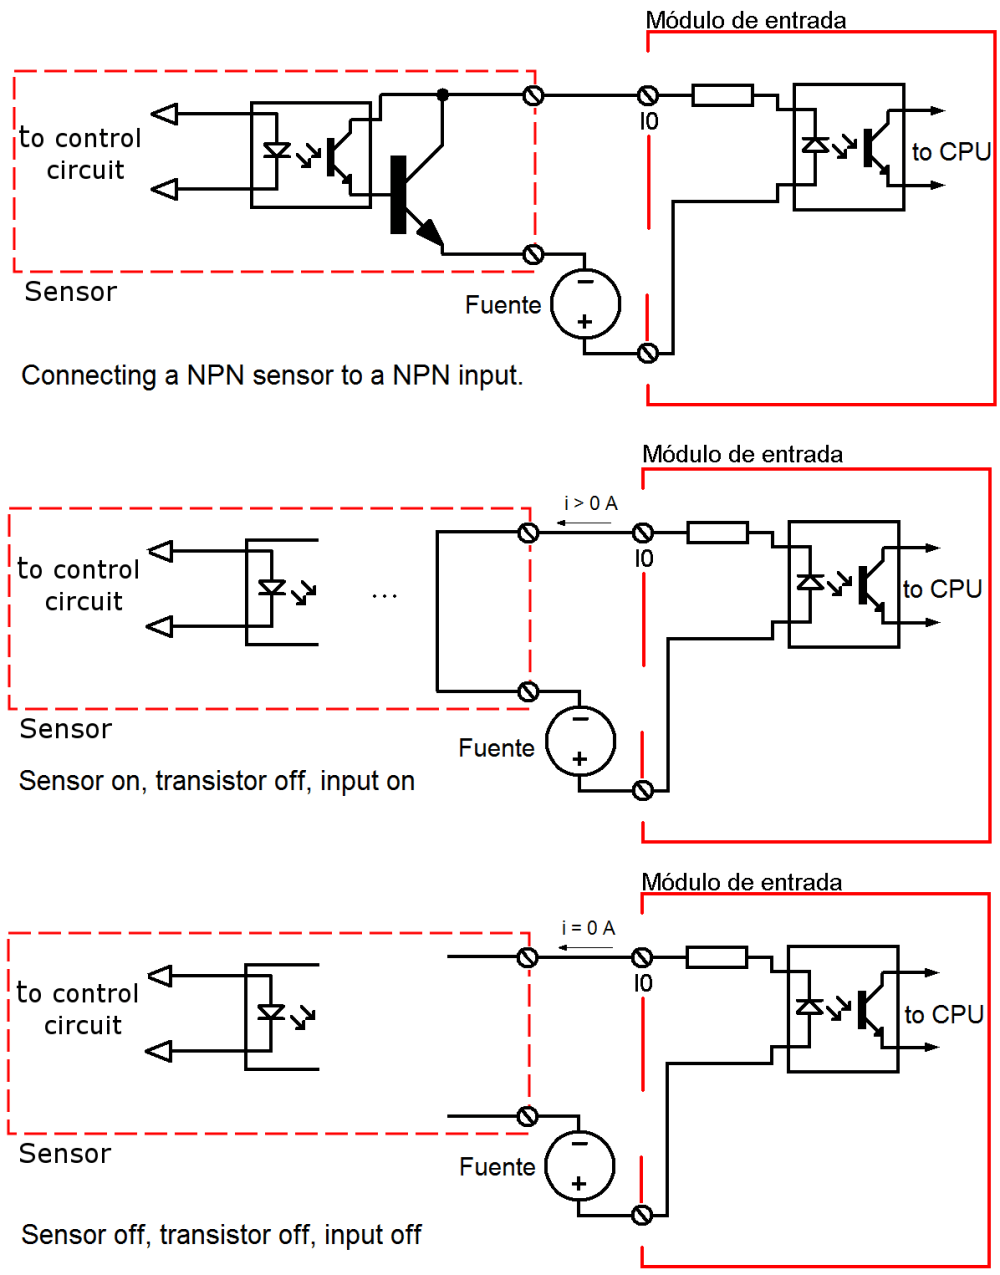 medium resolution of connecting npn sensor to npn input